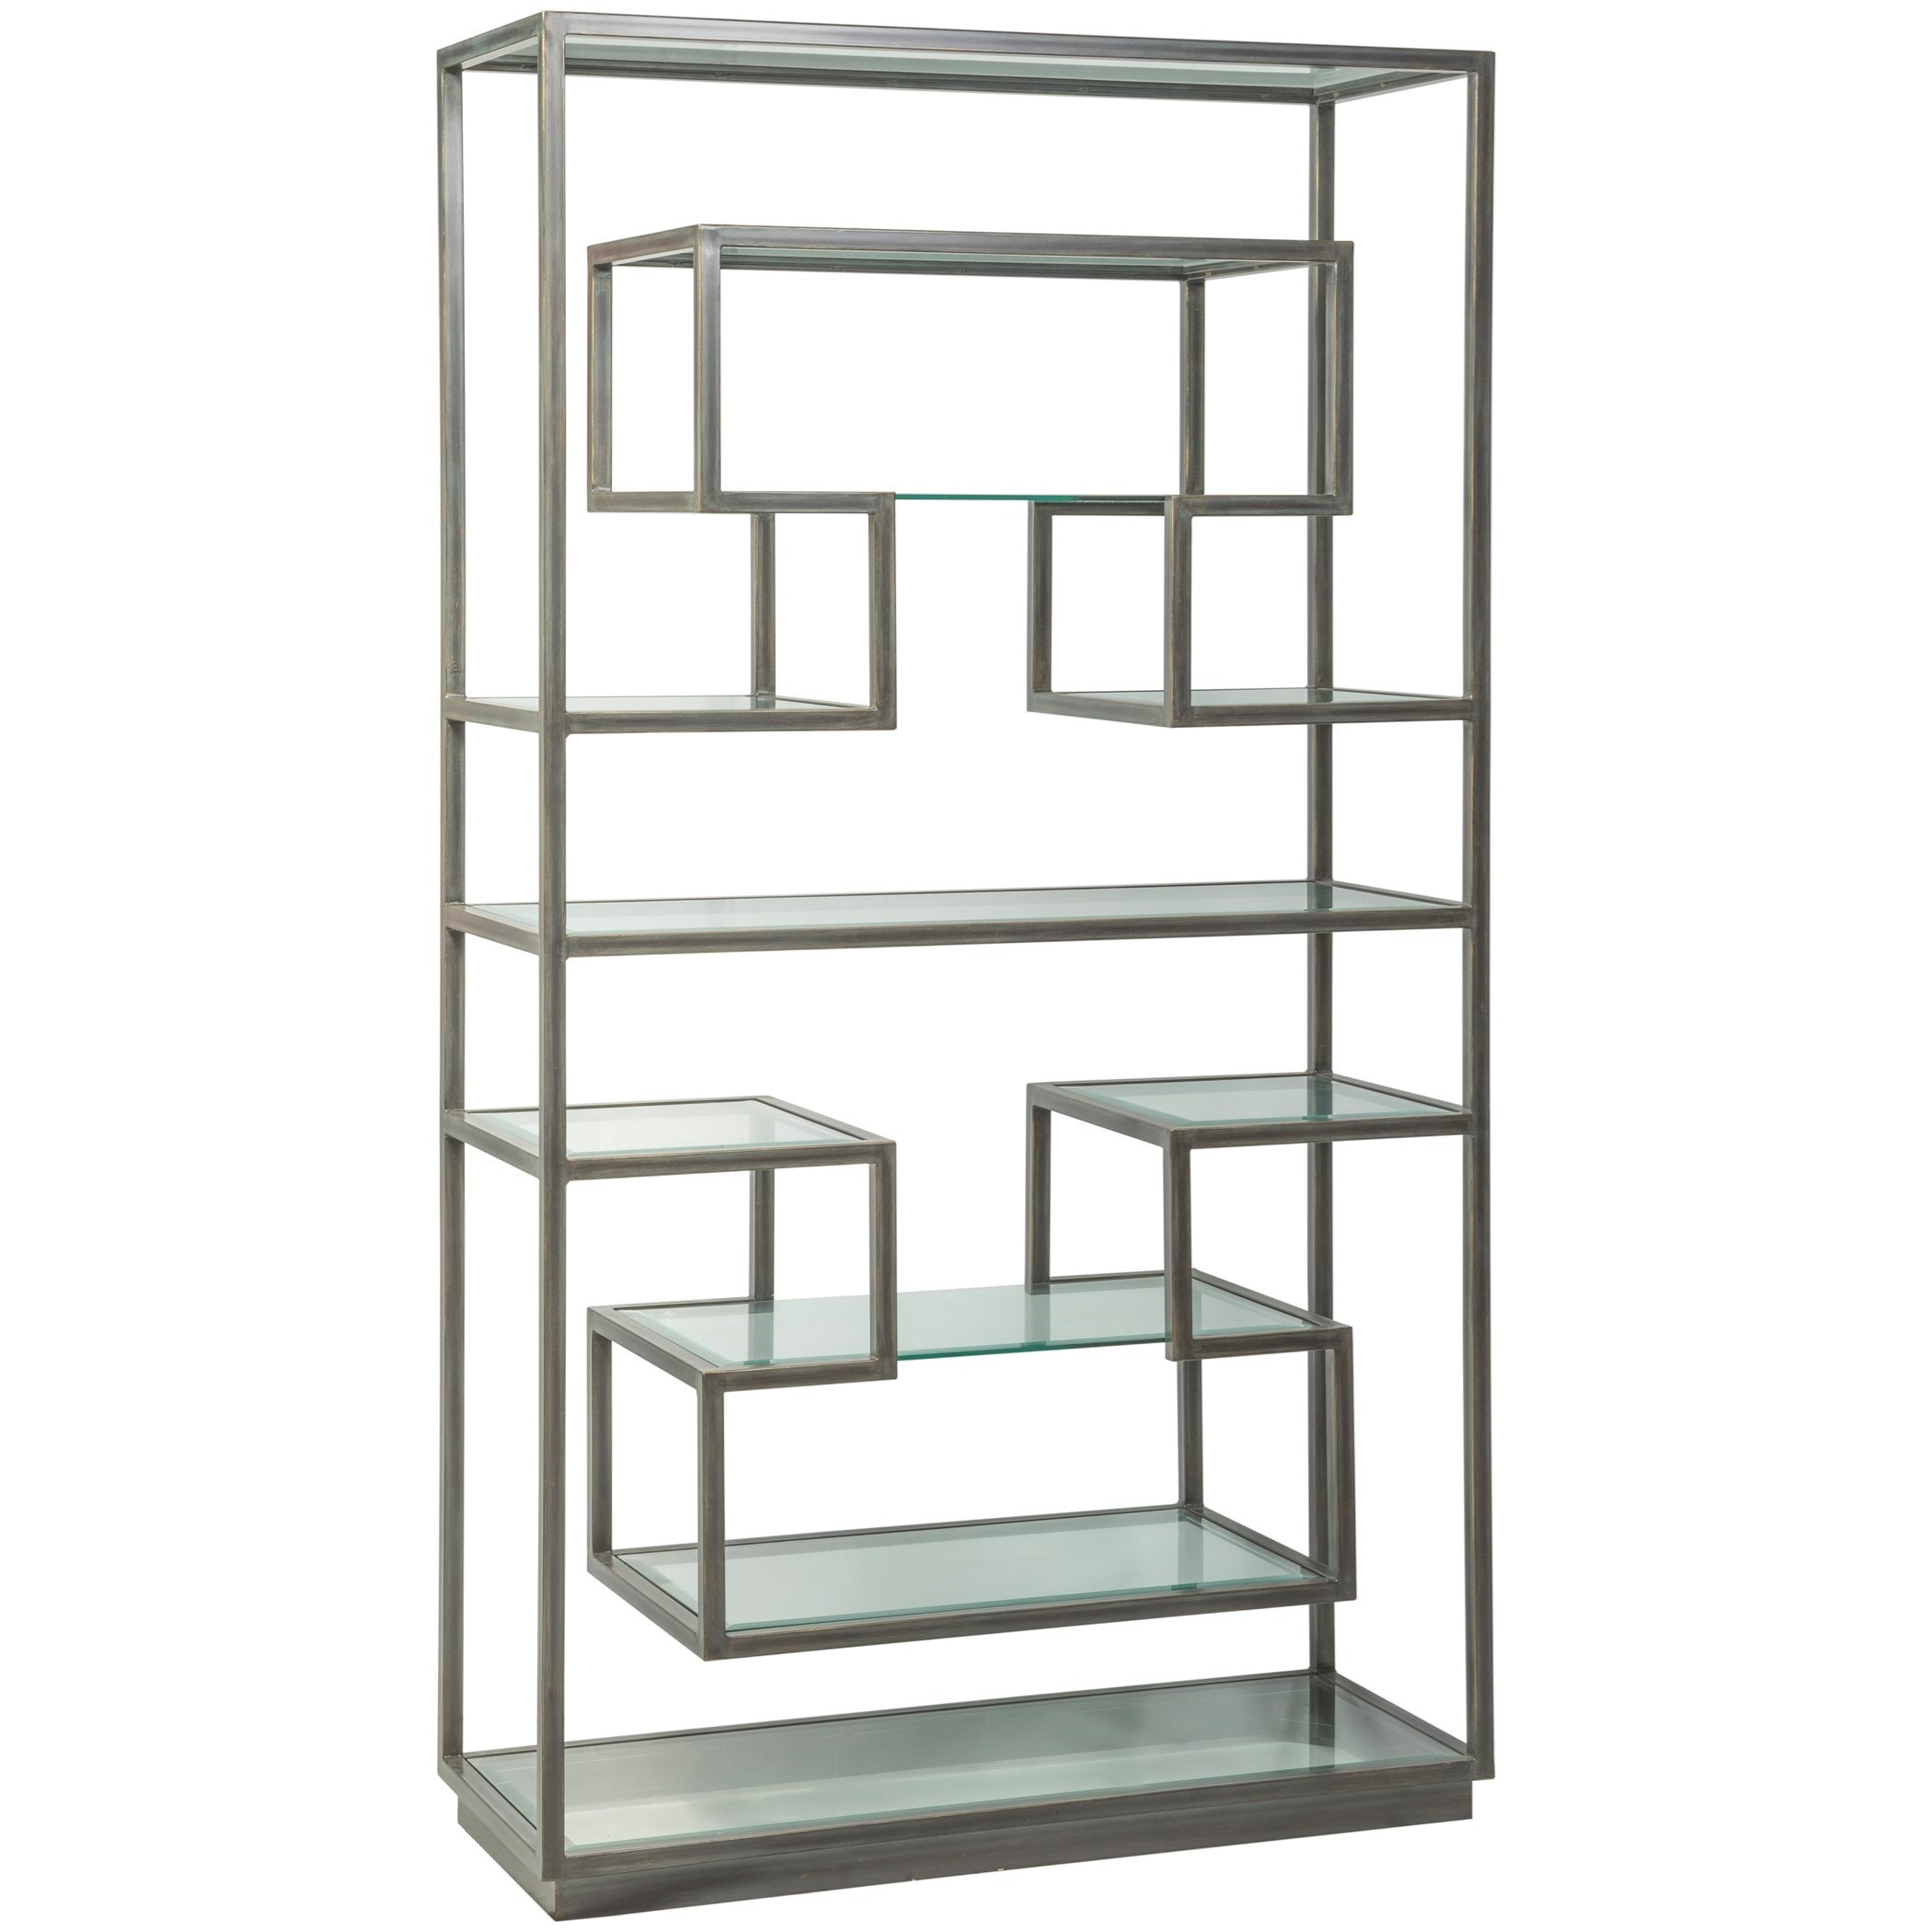 Metal Designs Holden Etagere by Artistica at Sprintz Furniture